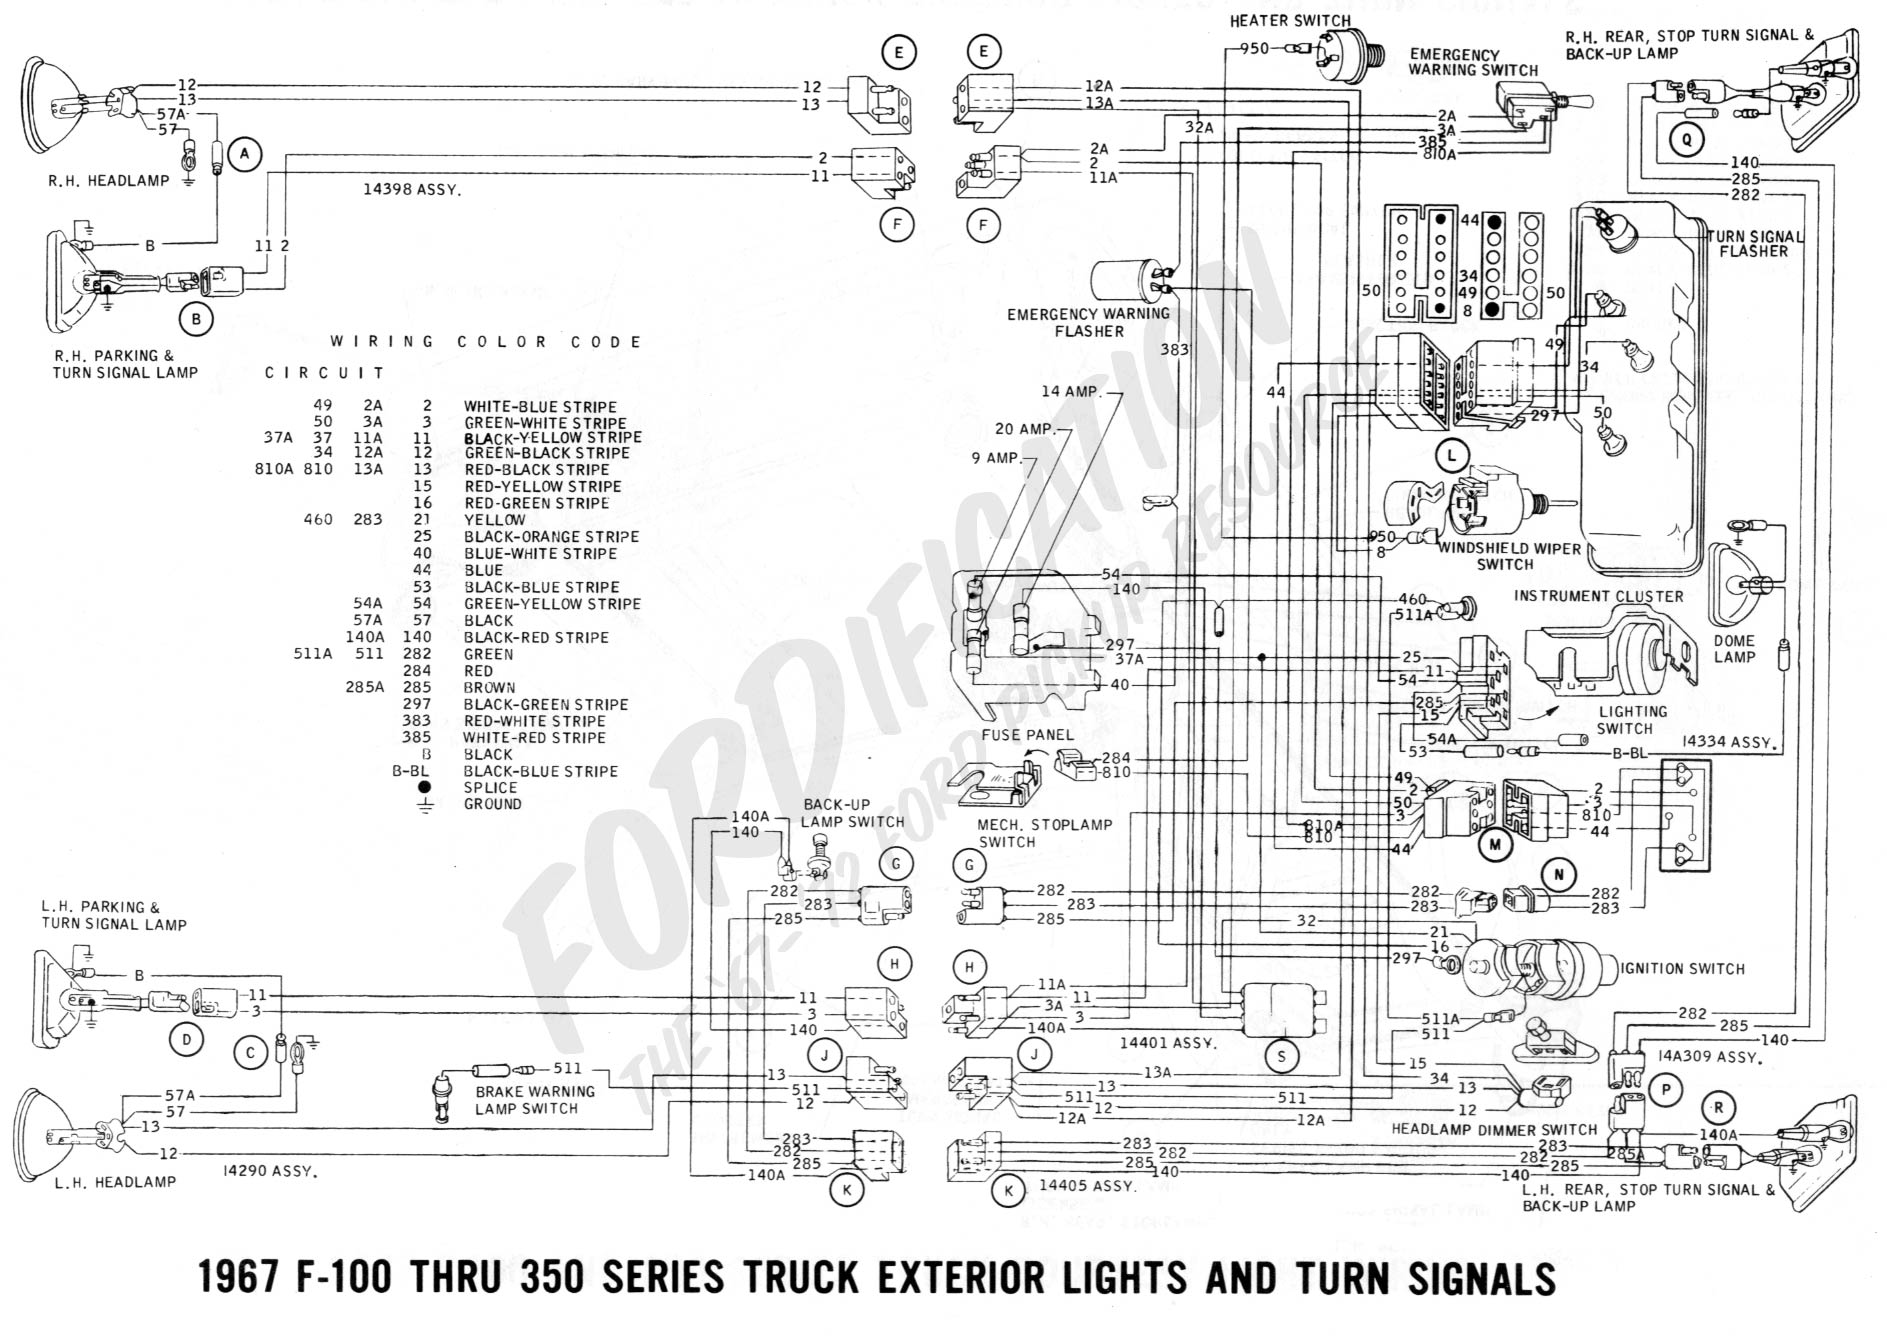 ford truck technical drawings and schematics section h wiring rh fordification com 1974 Ford Bronco Wiring Diagram 1974 Ford Bronco Wiring Diagram